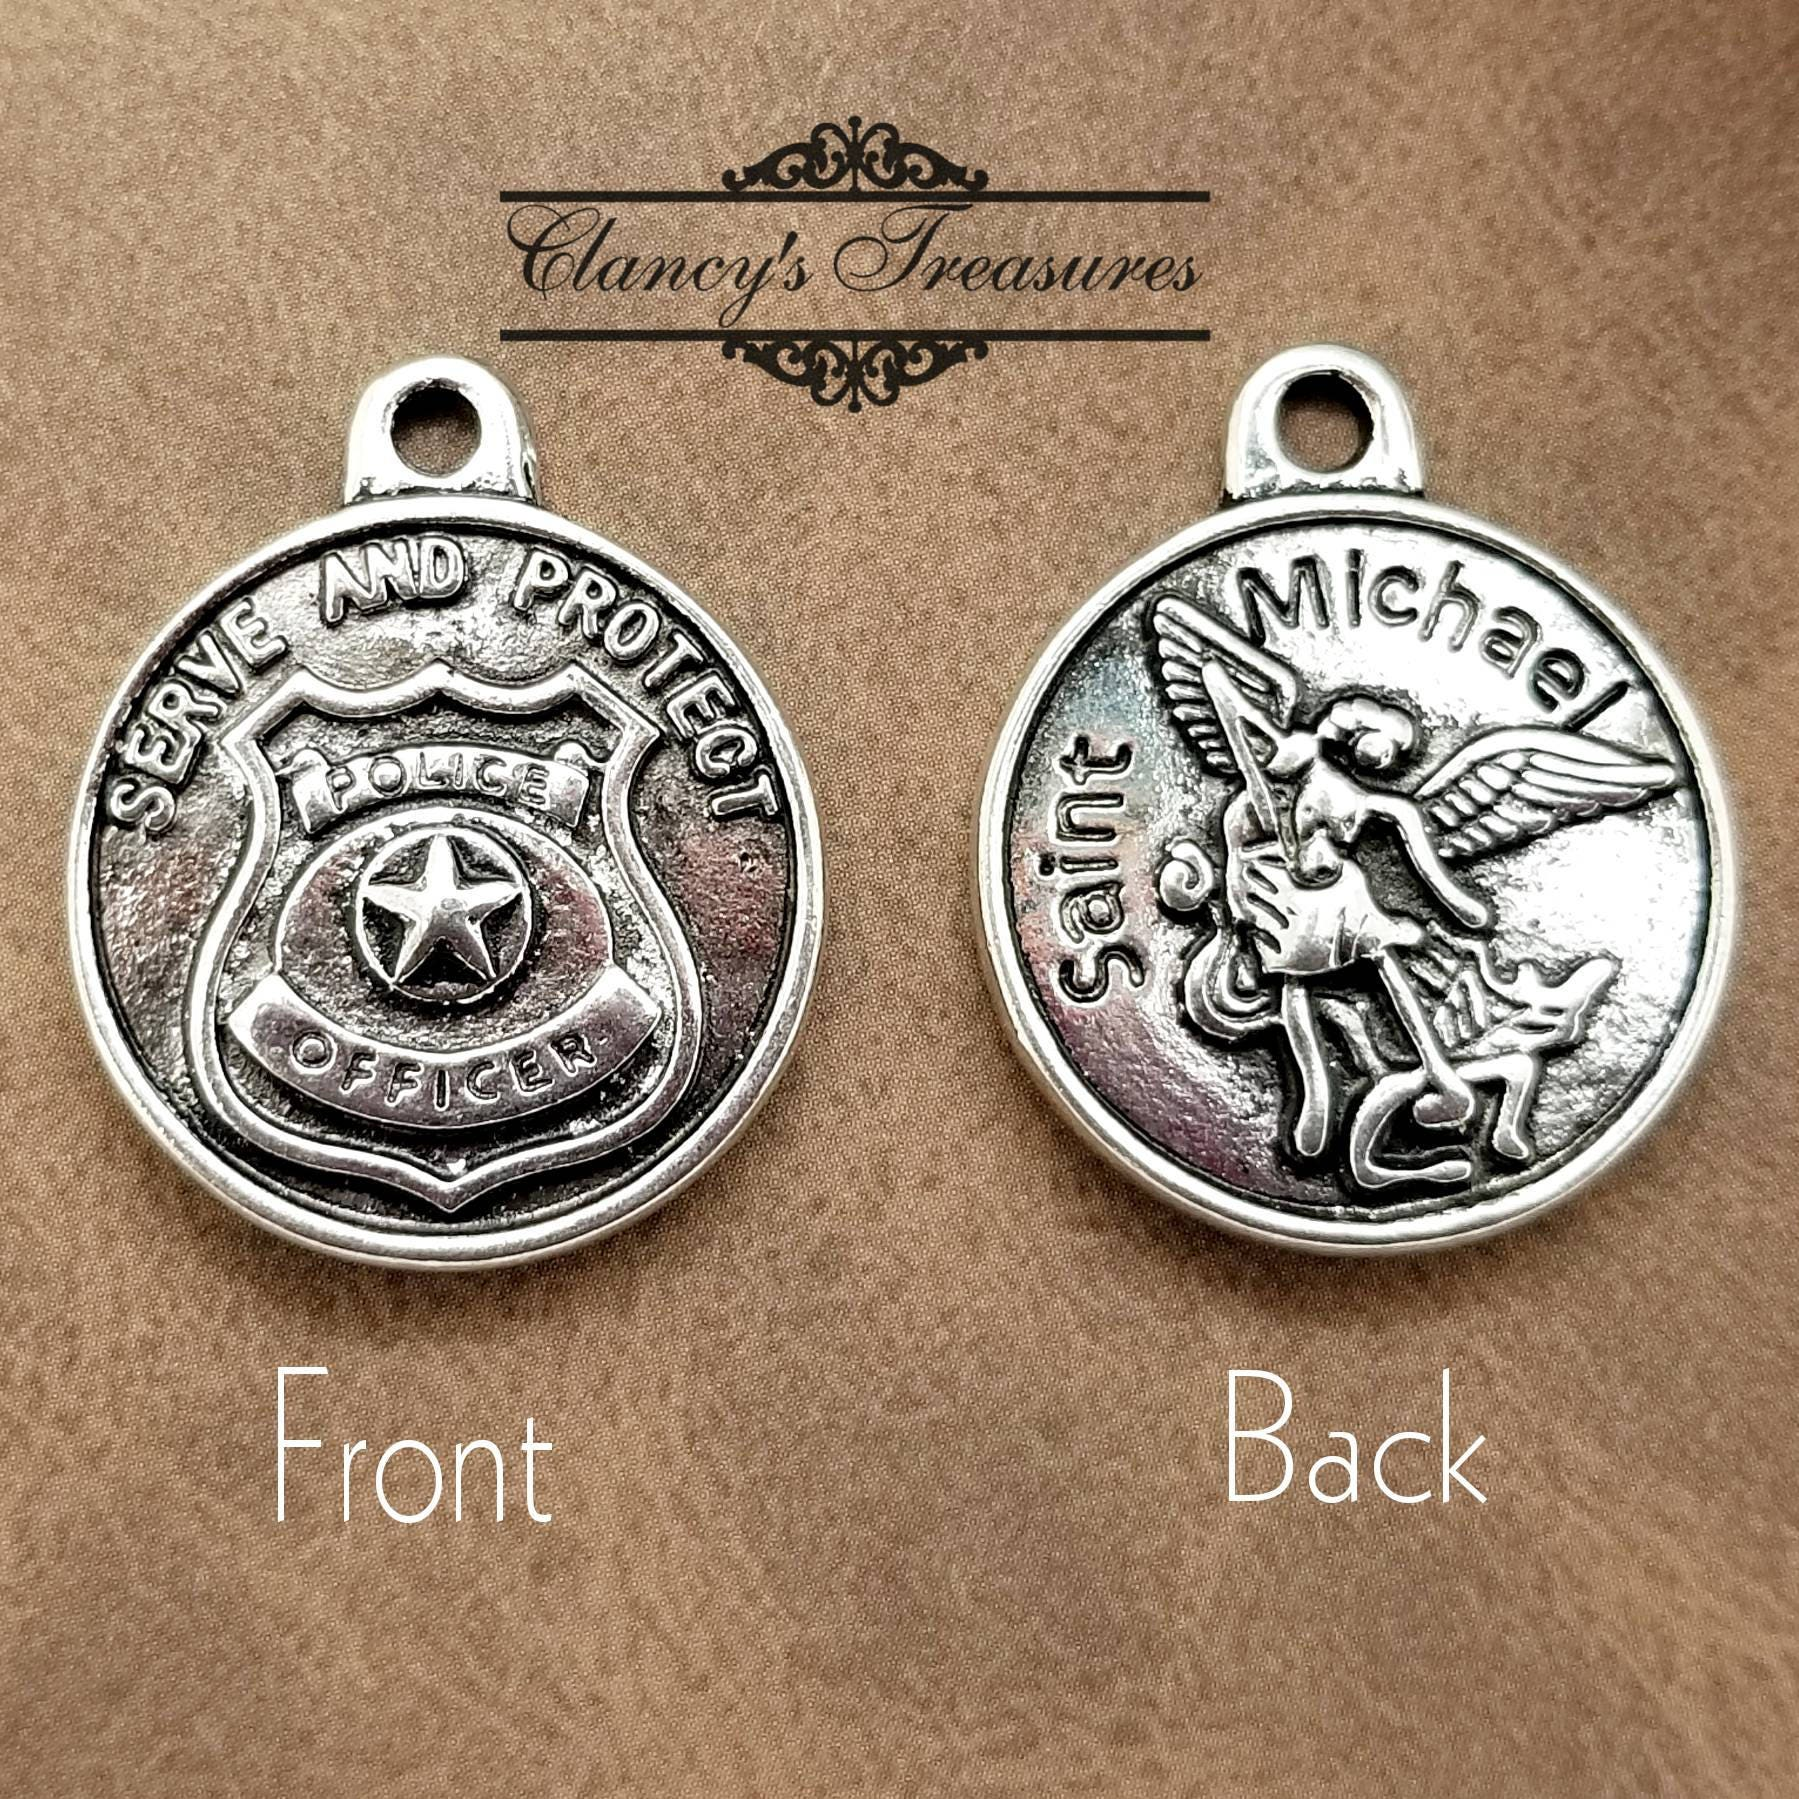 john thumb jewelry pendants charm necklace category necklaces badge police pendant